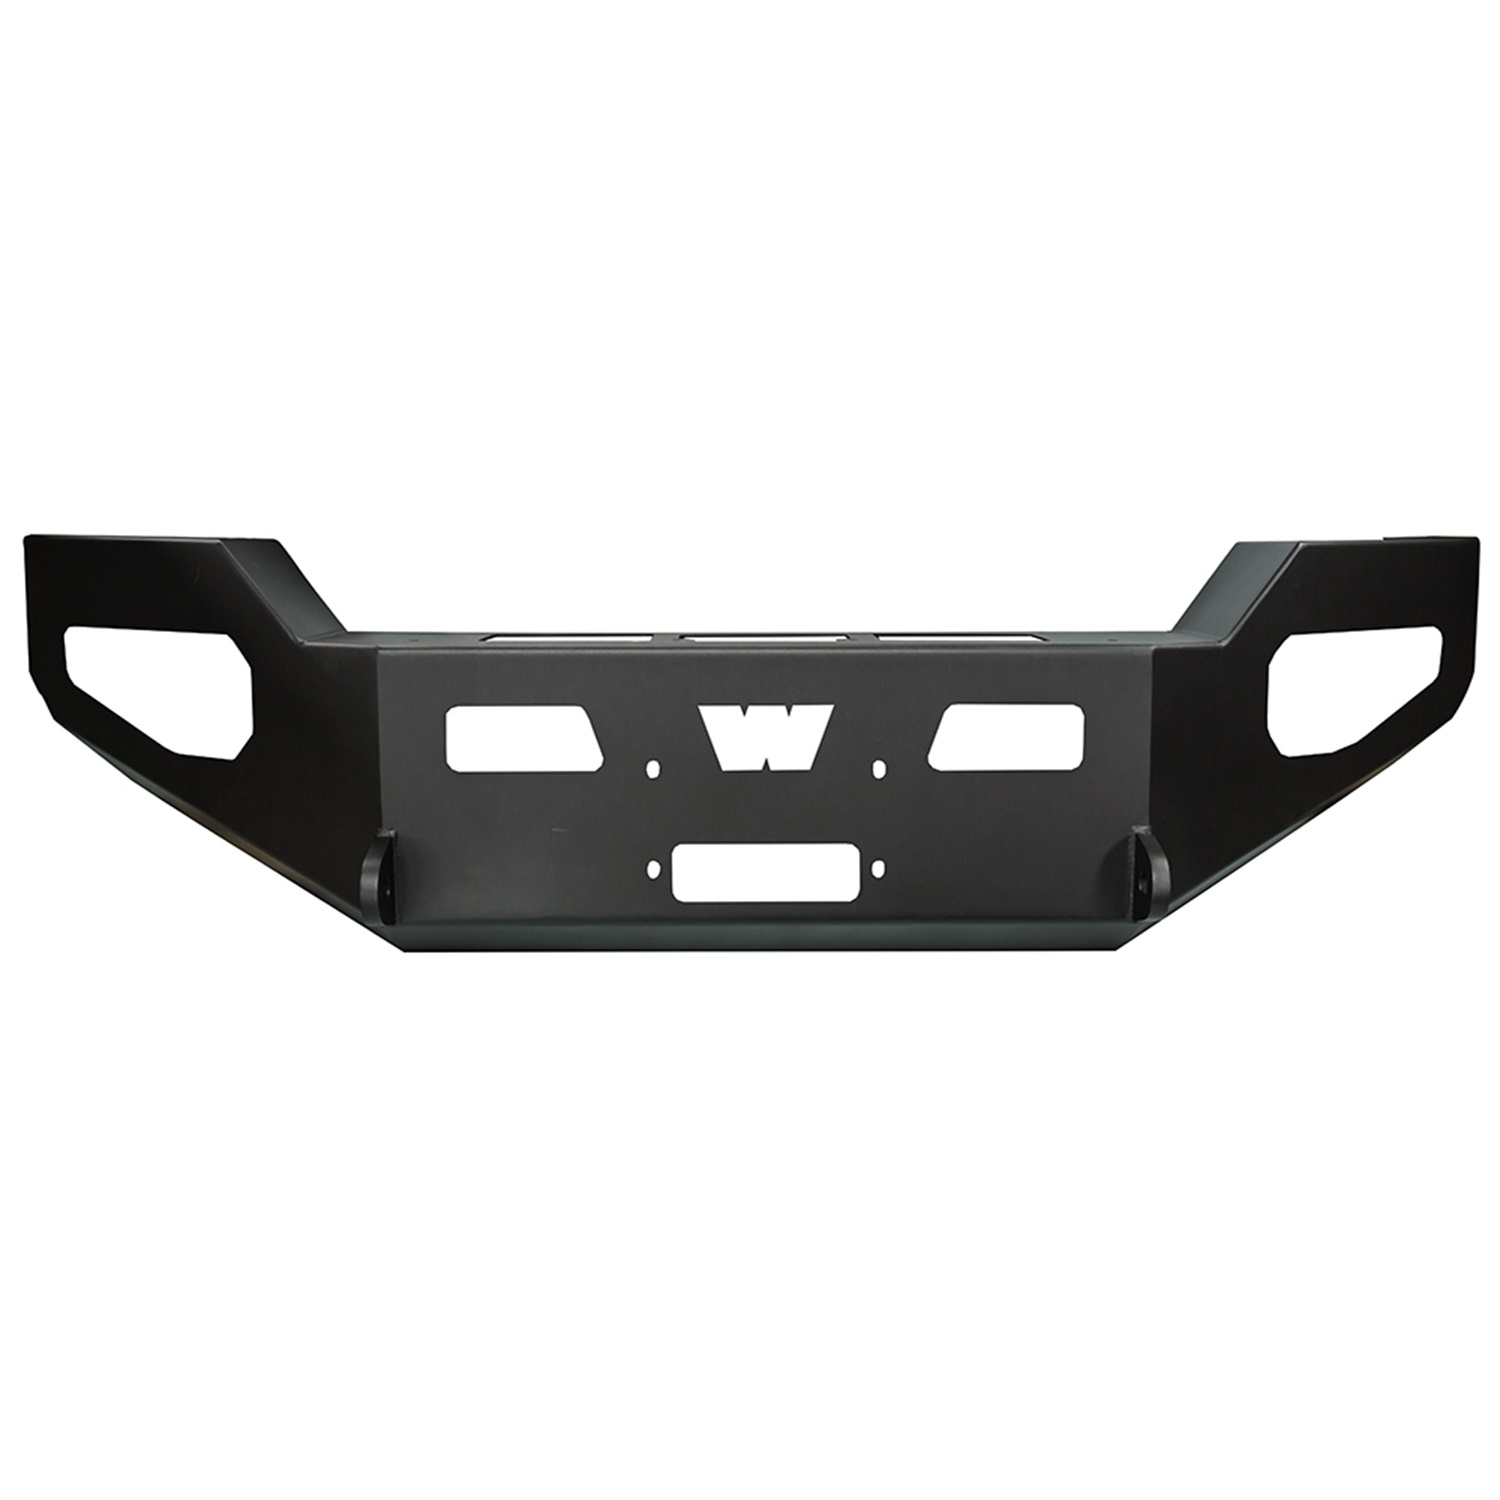 Warn 95230 Heavy Duty Bumper Fits 15 Sierra 2500 HD Sierra 3500 HD